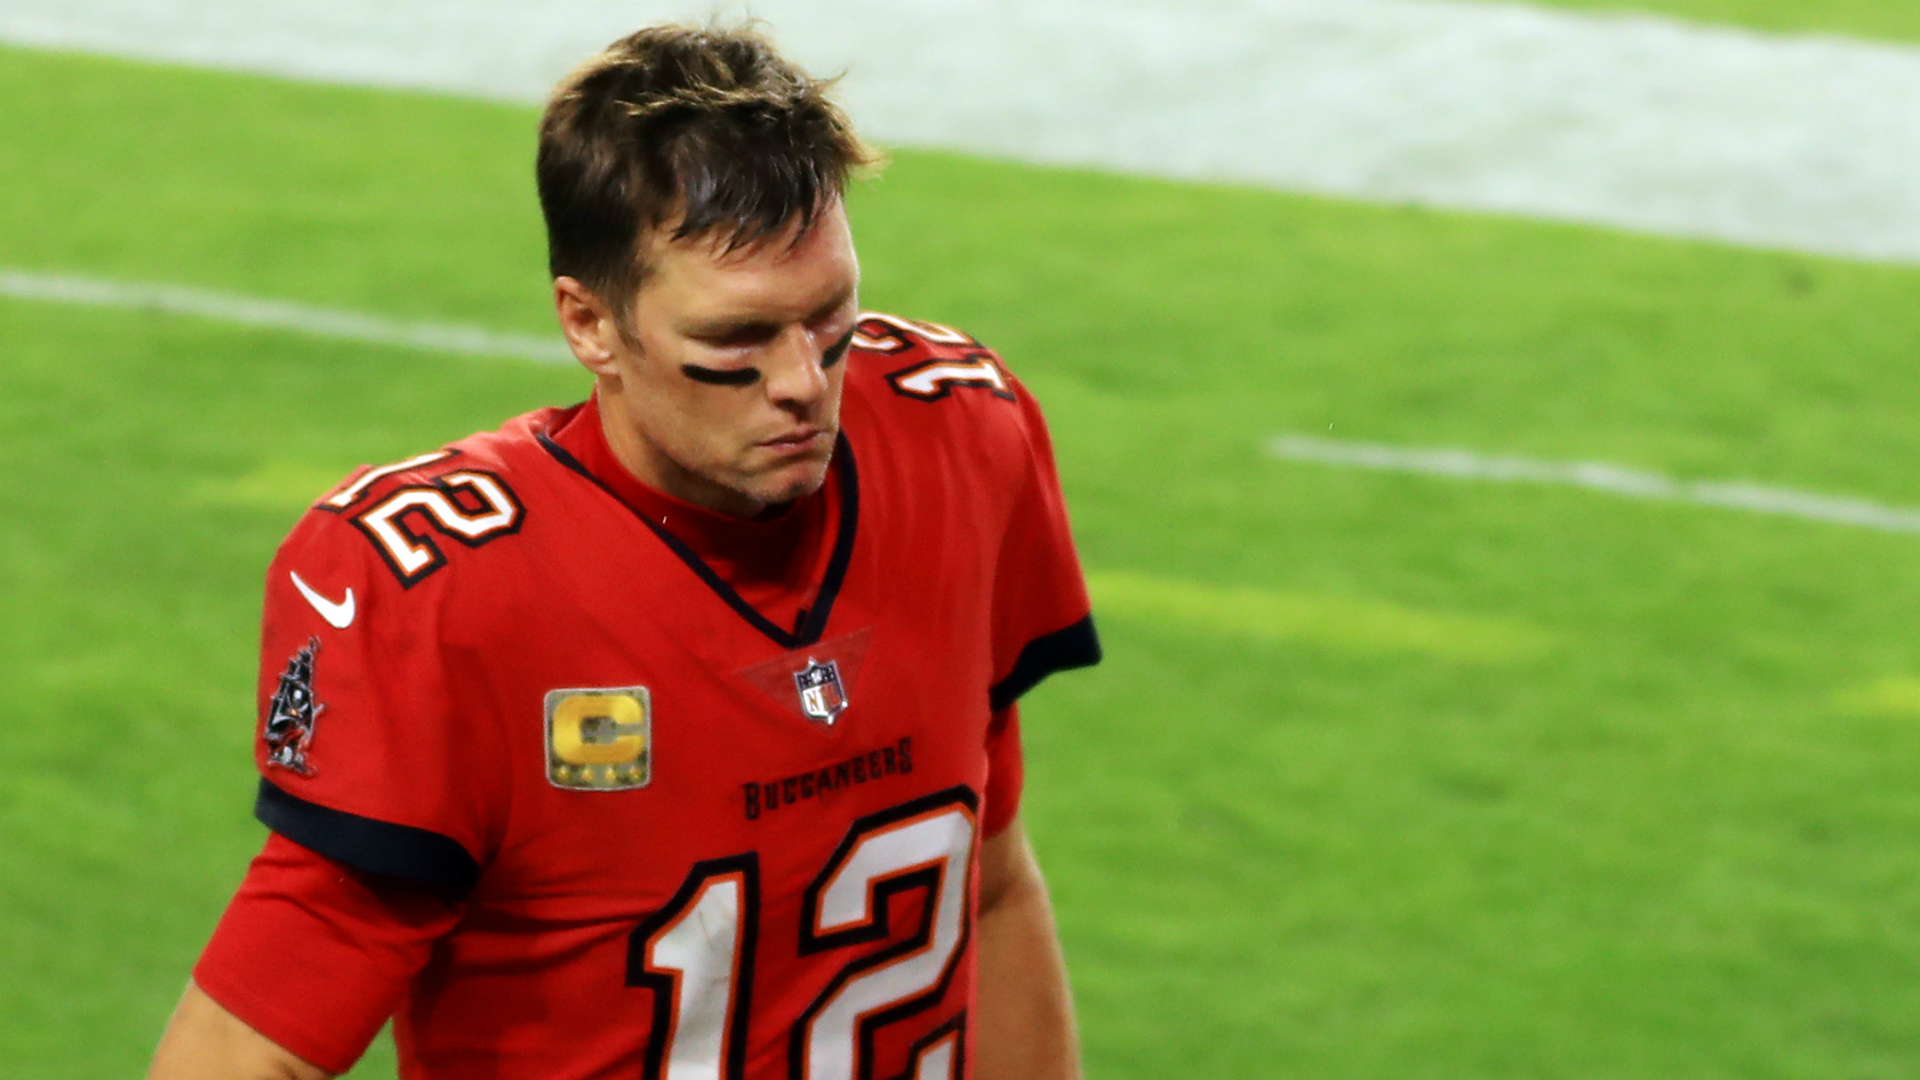 Tom Brady at loss for answers after Bucs' blowout loss to Drew Brees' Saints